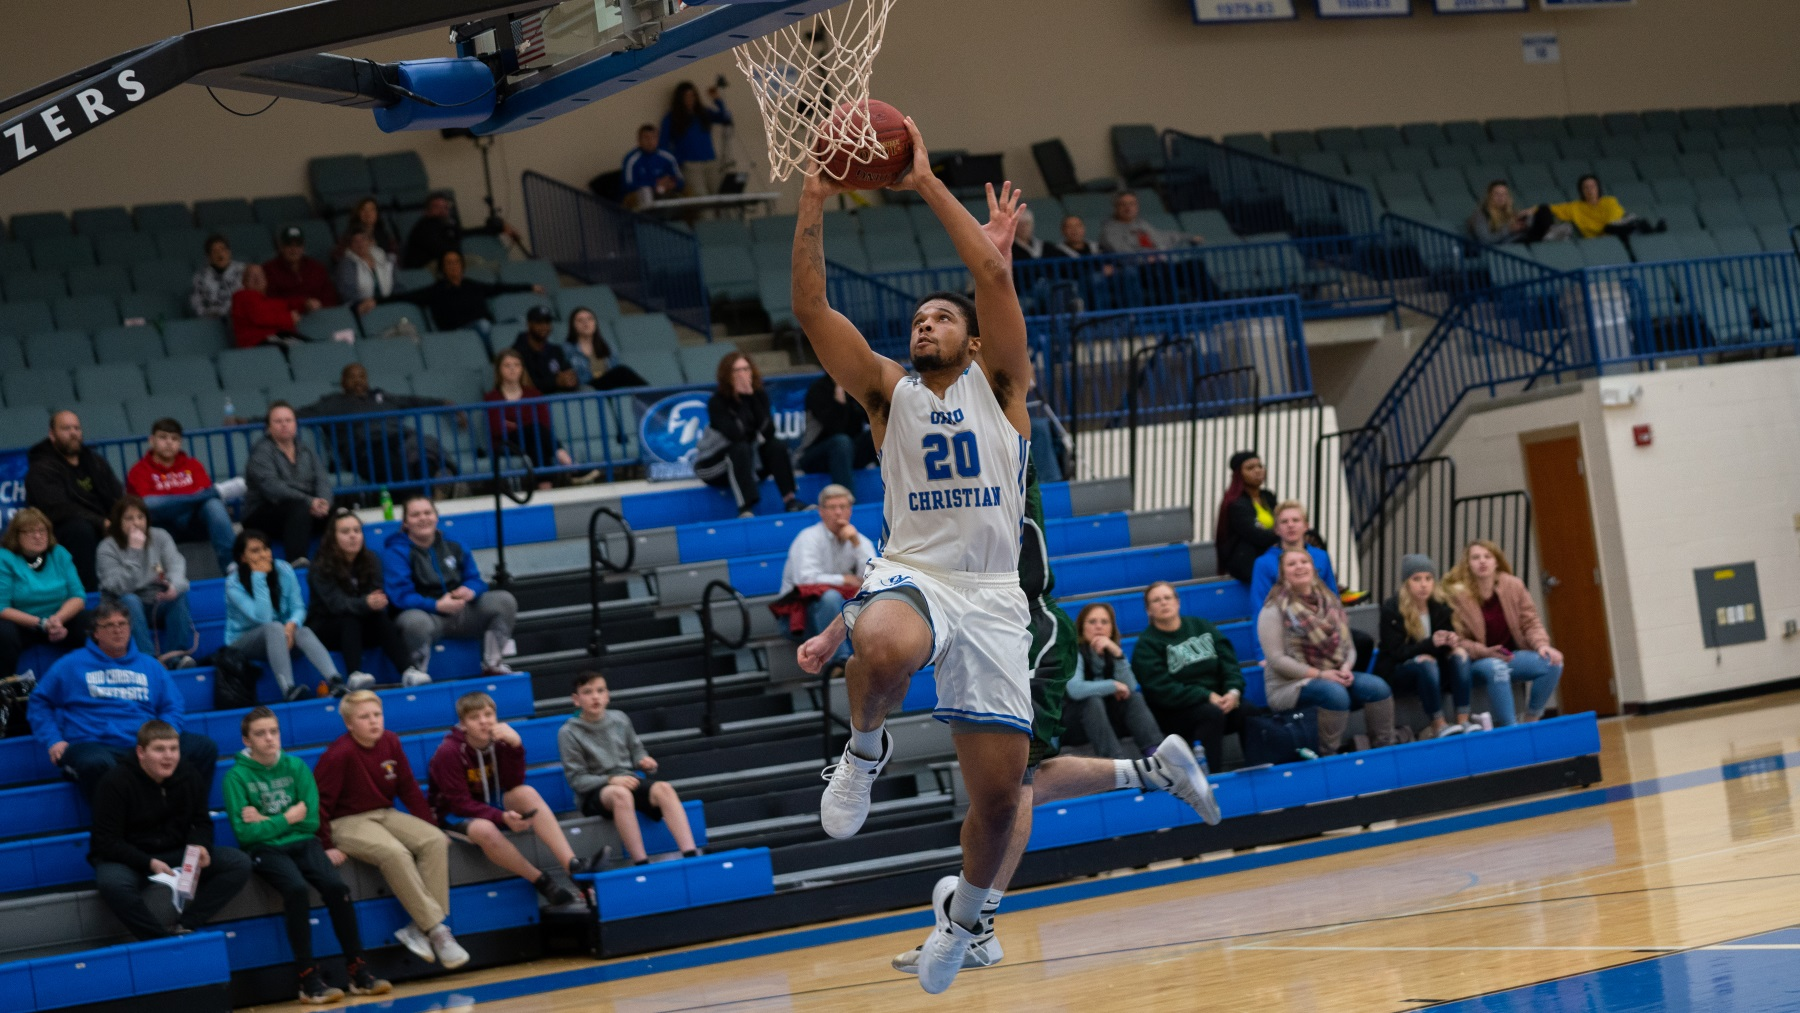 Barksdale Named 2018-19 RSC Men's Newcomer of the Year image